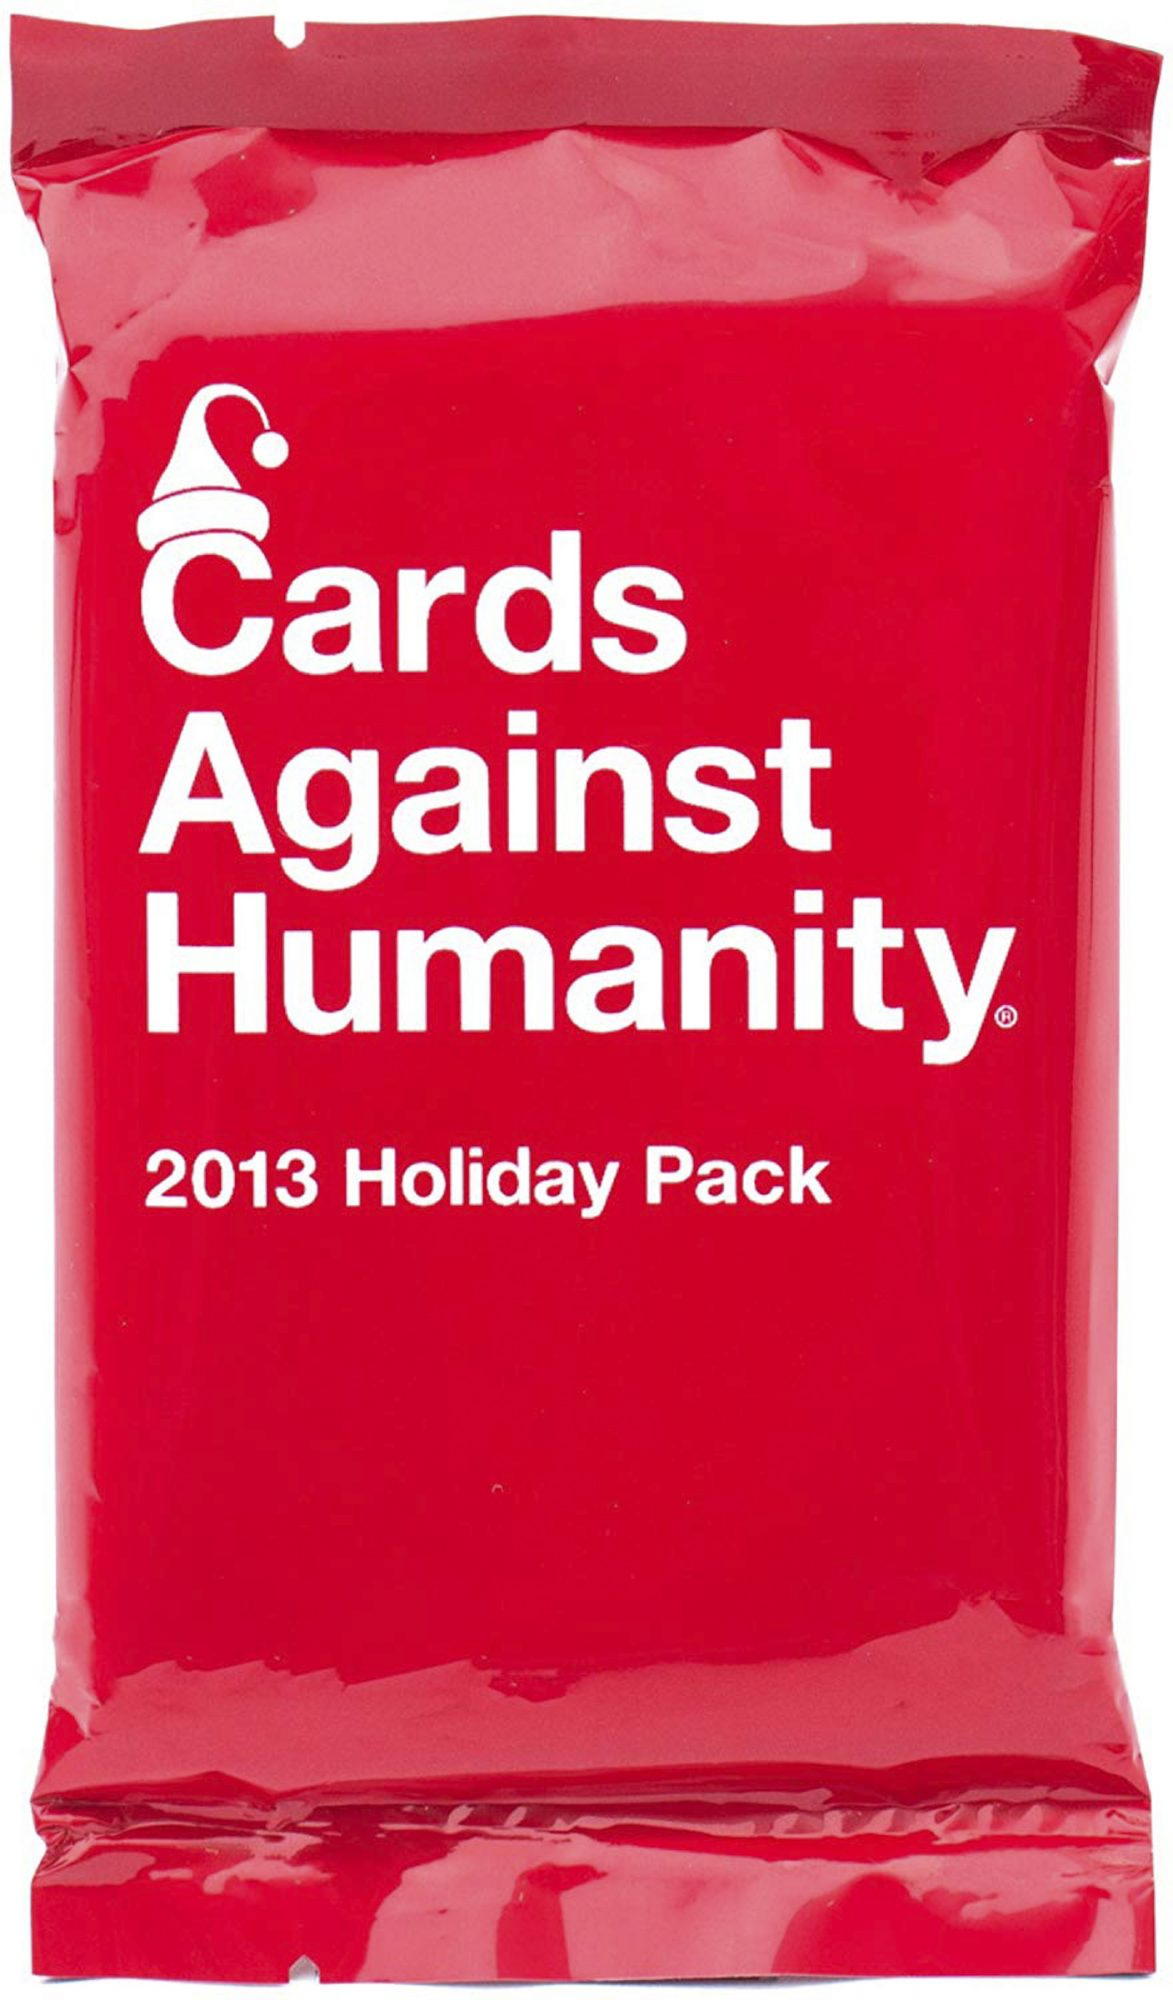 cards-against-humanity-06.jpg